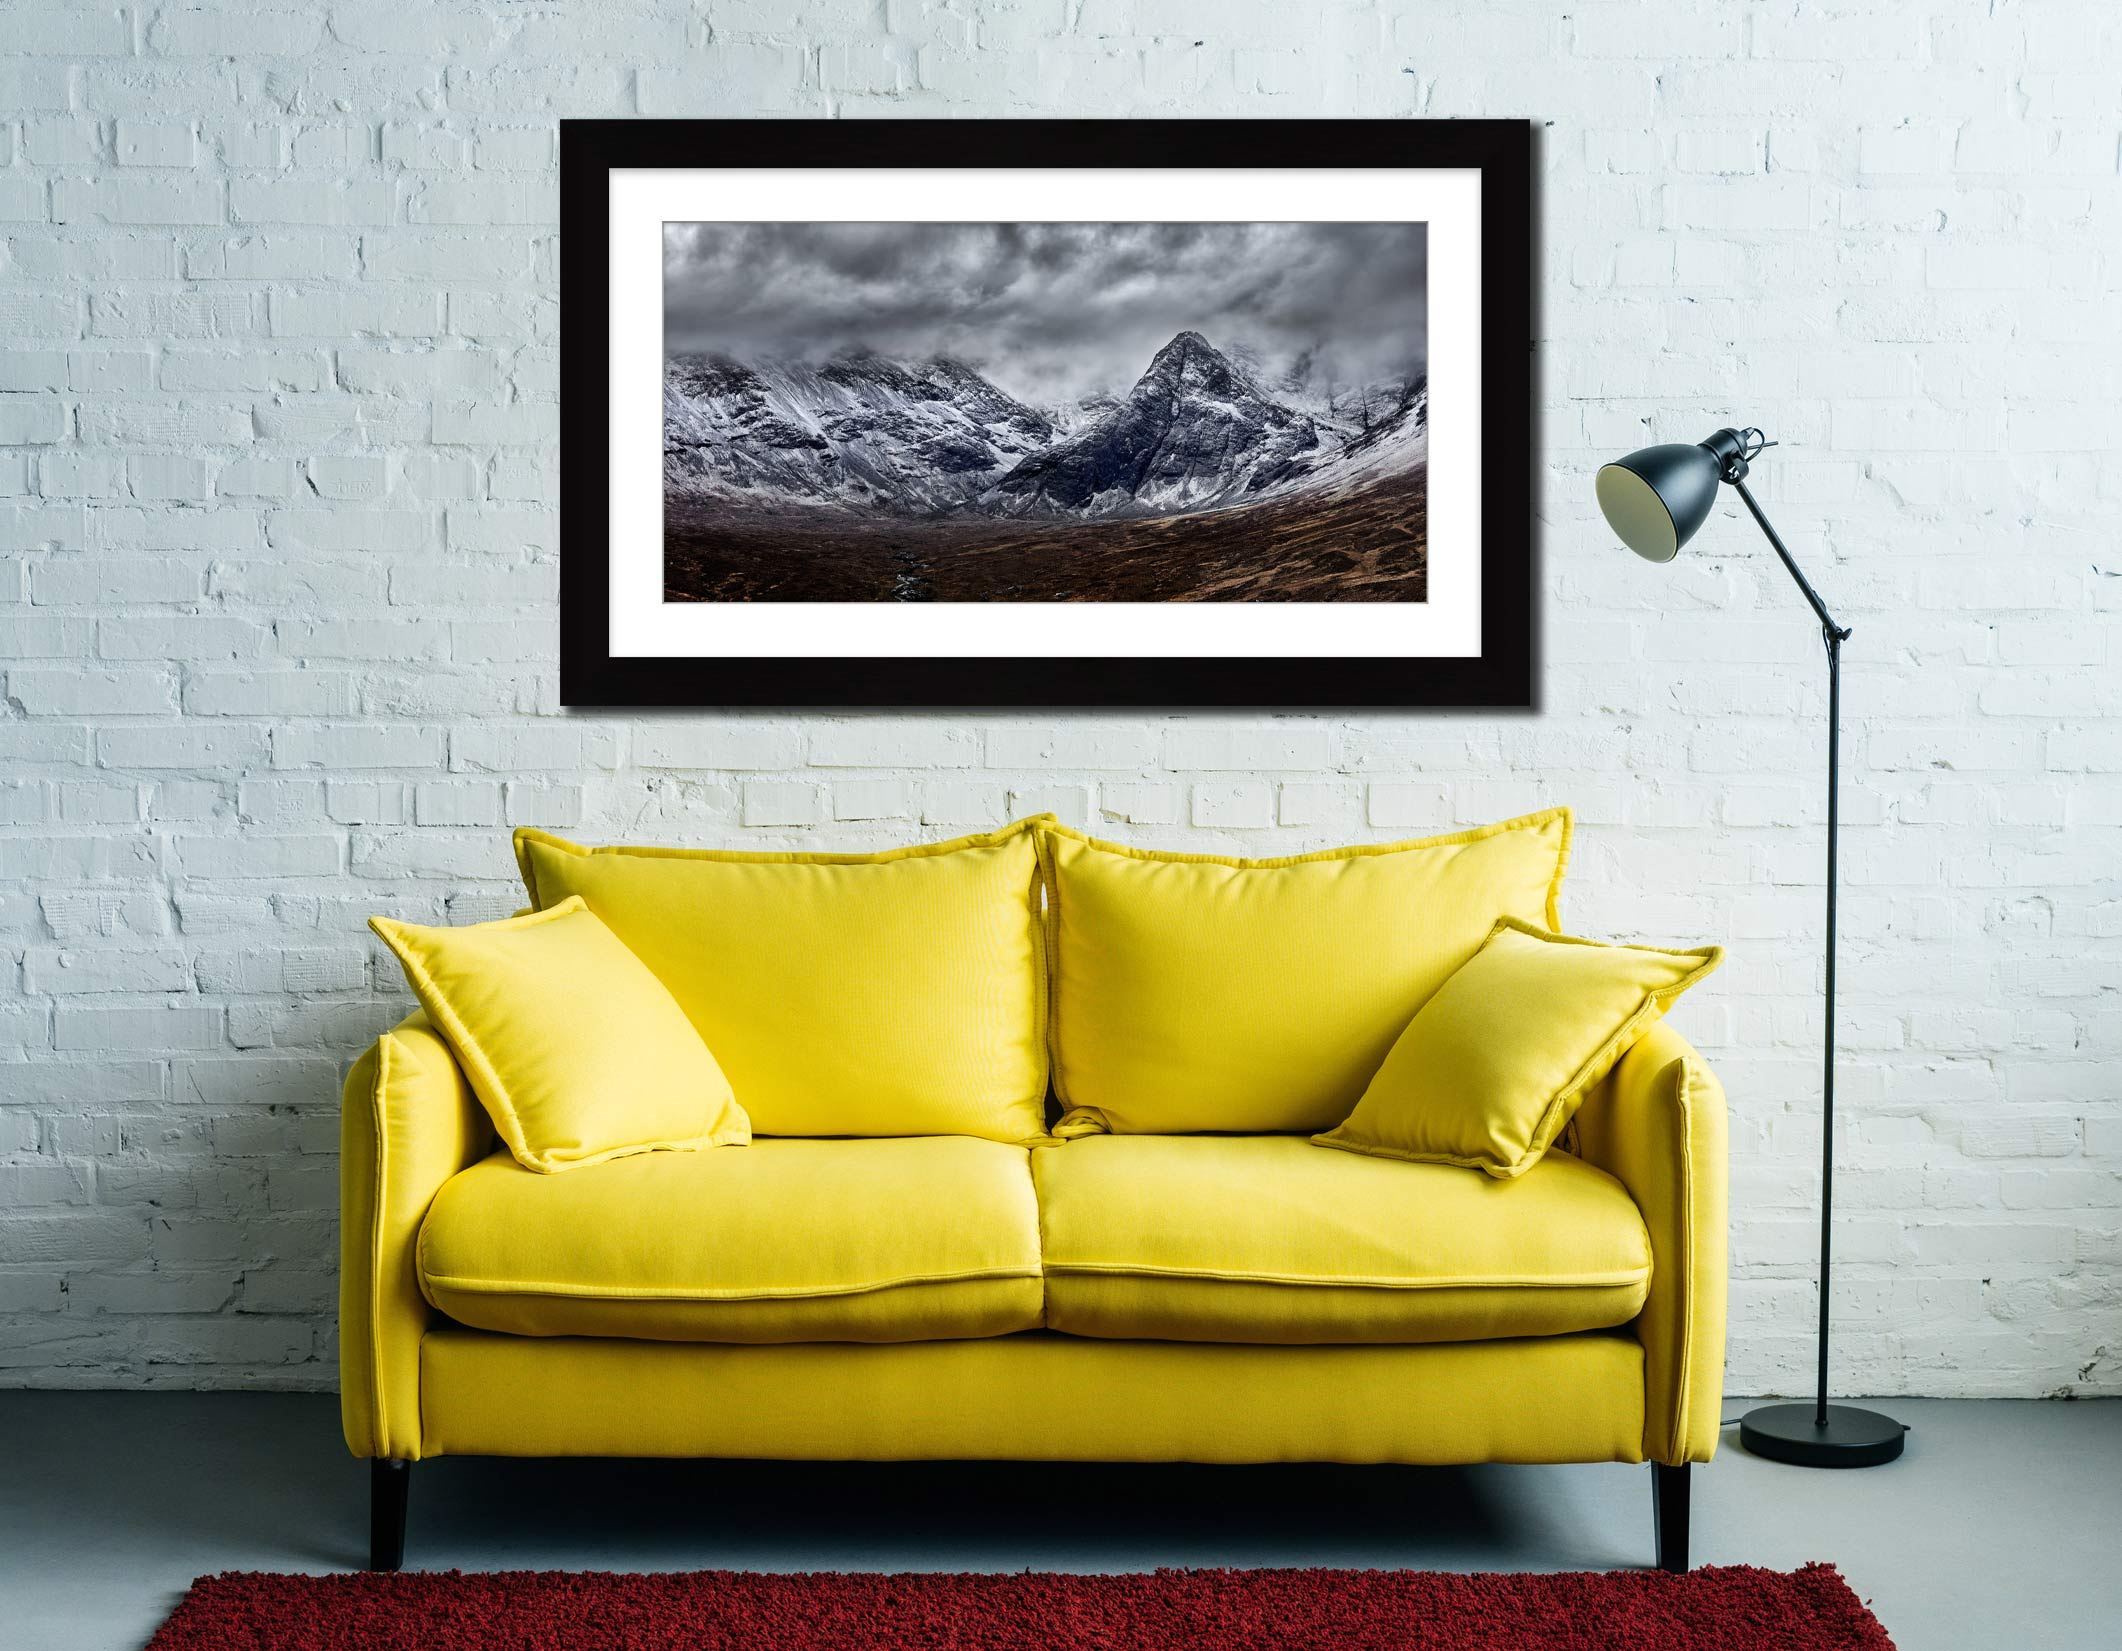 Black Cuillins Snow Fall - Framed Print with Mount on Wall